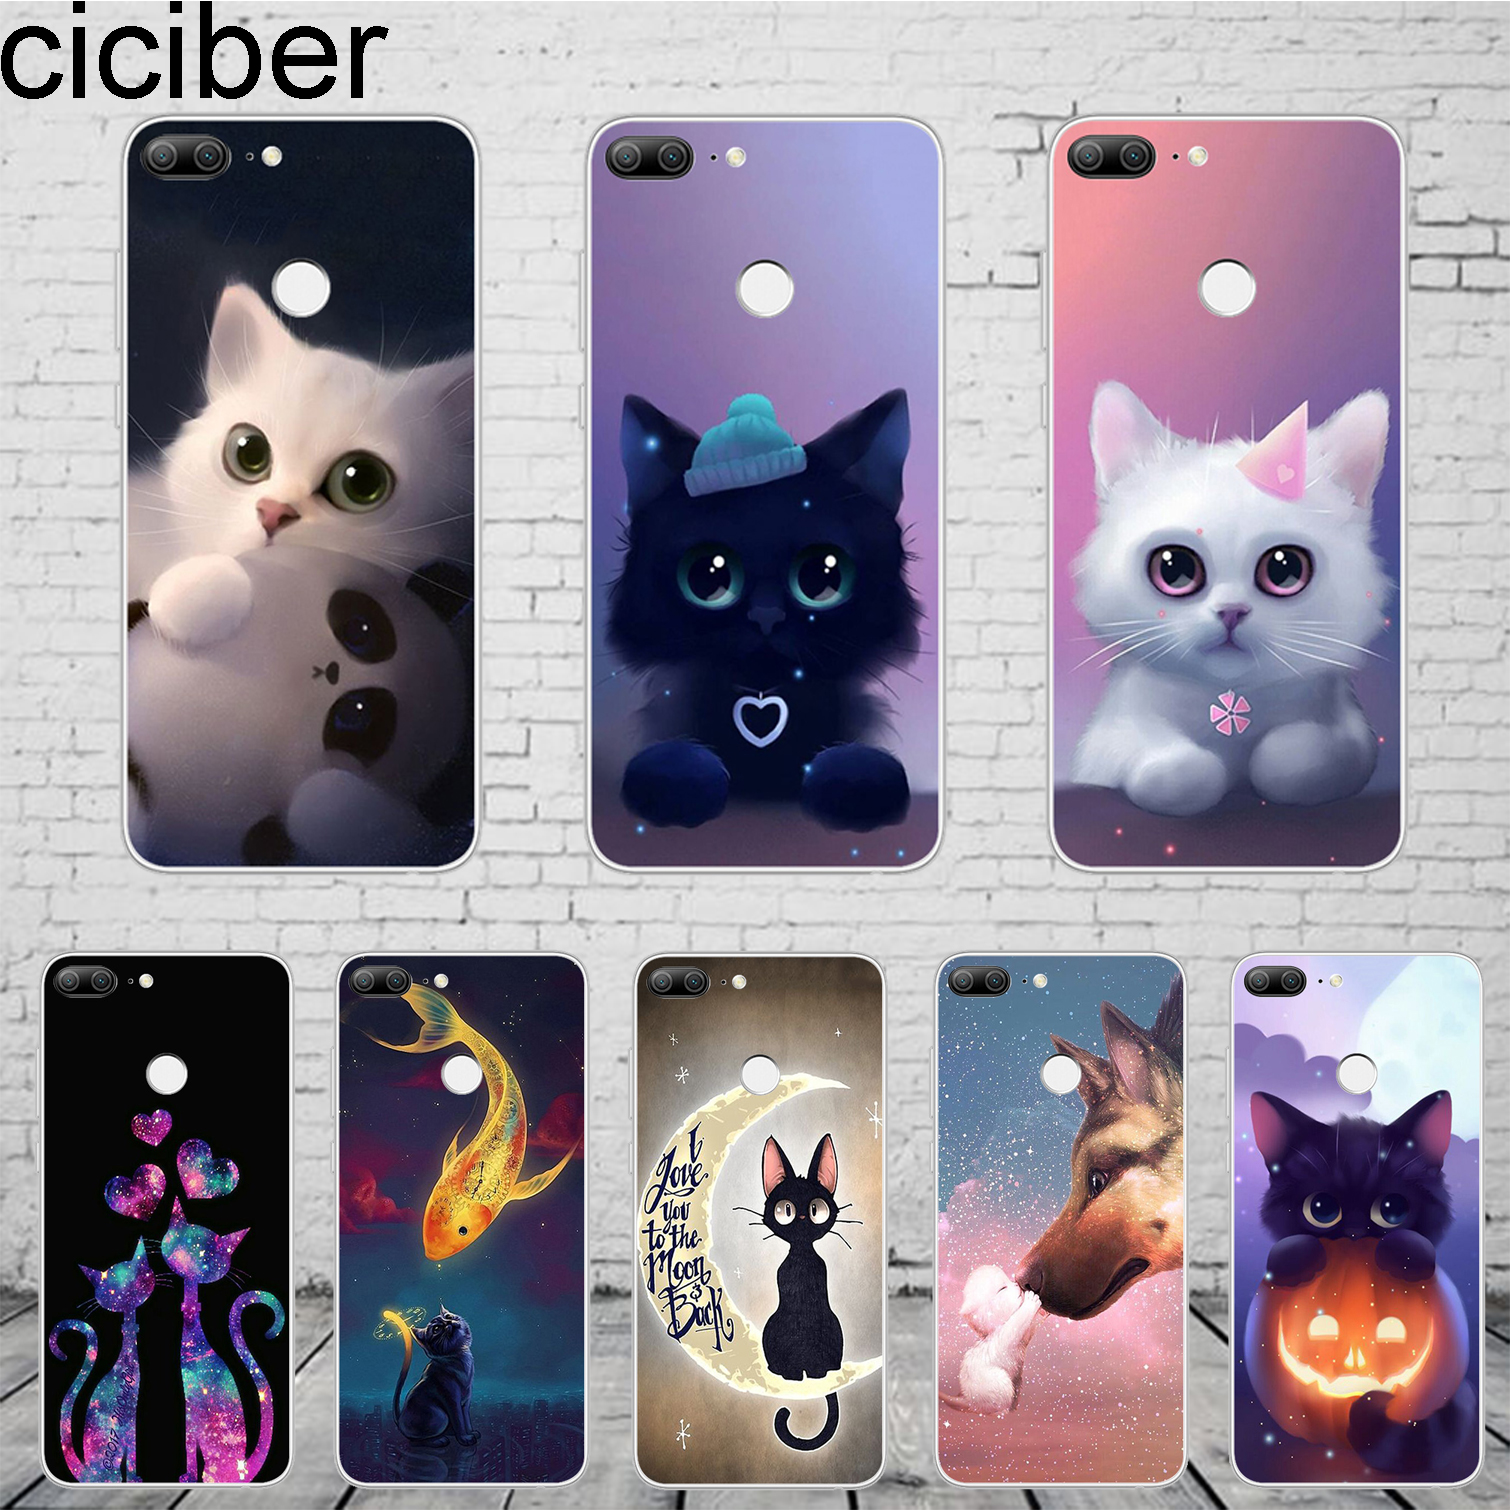 ciciber Cute Animal Cat <font><b>Fundas</b></font> For <font><b>Huawei</b></font> Honor 10 9 8 Pro Lite X Play Phone Case For <font><b>Y</b></font> 9 <font><b>7</b></font> 6 5 Prime Pro 2017 2018 <font><b>2019</b></font> TPU image